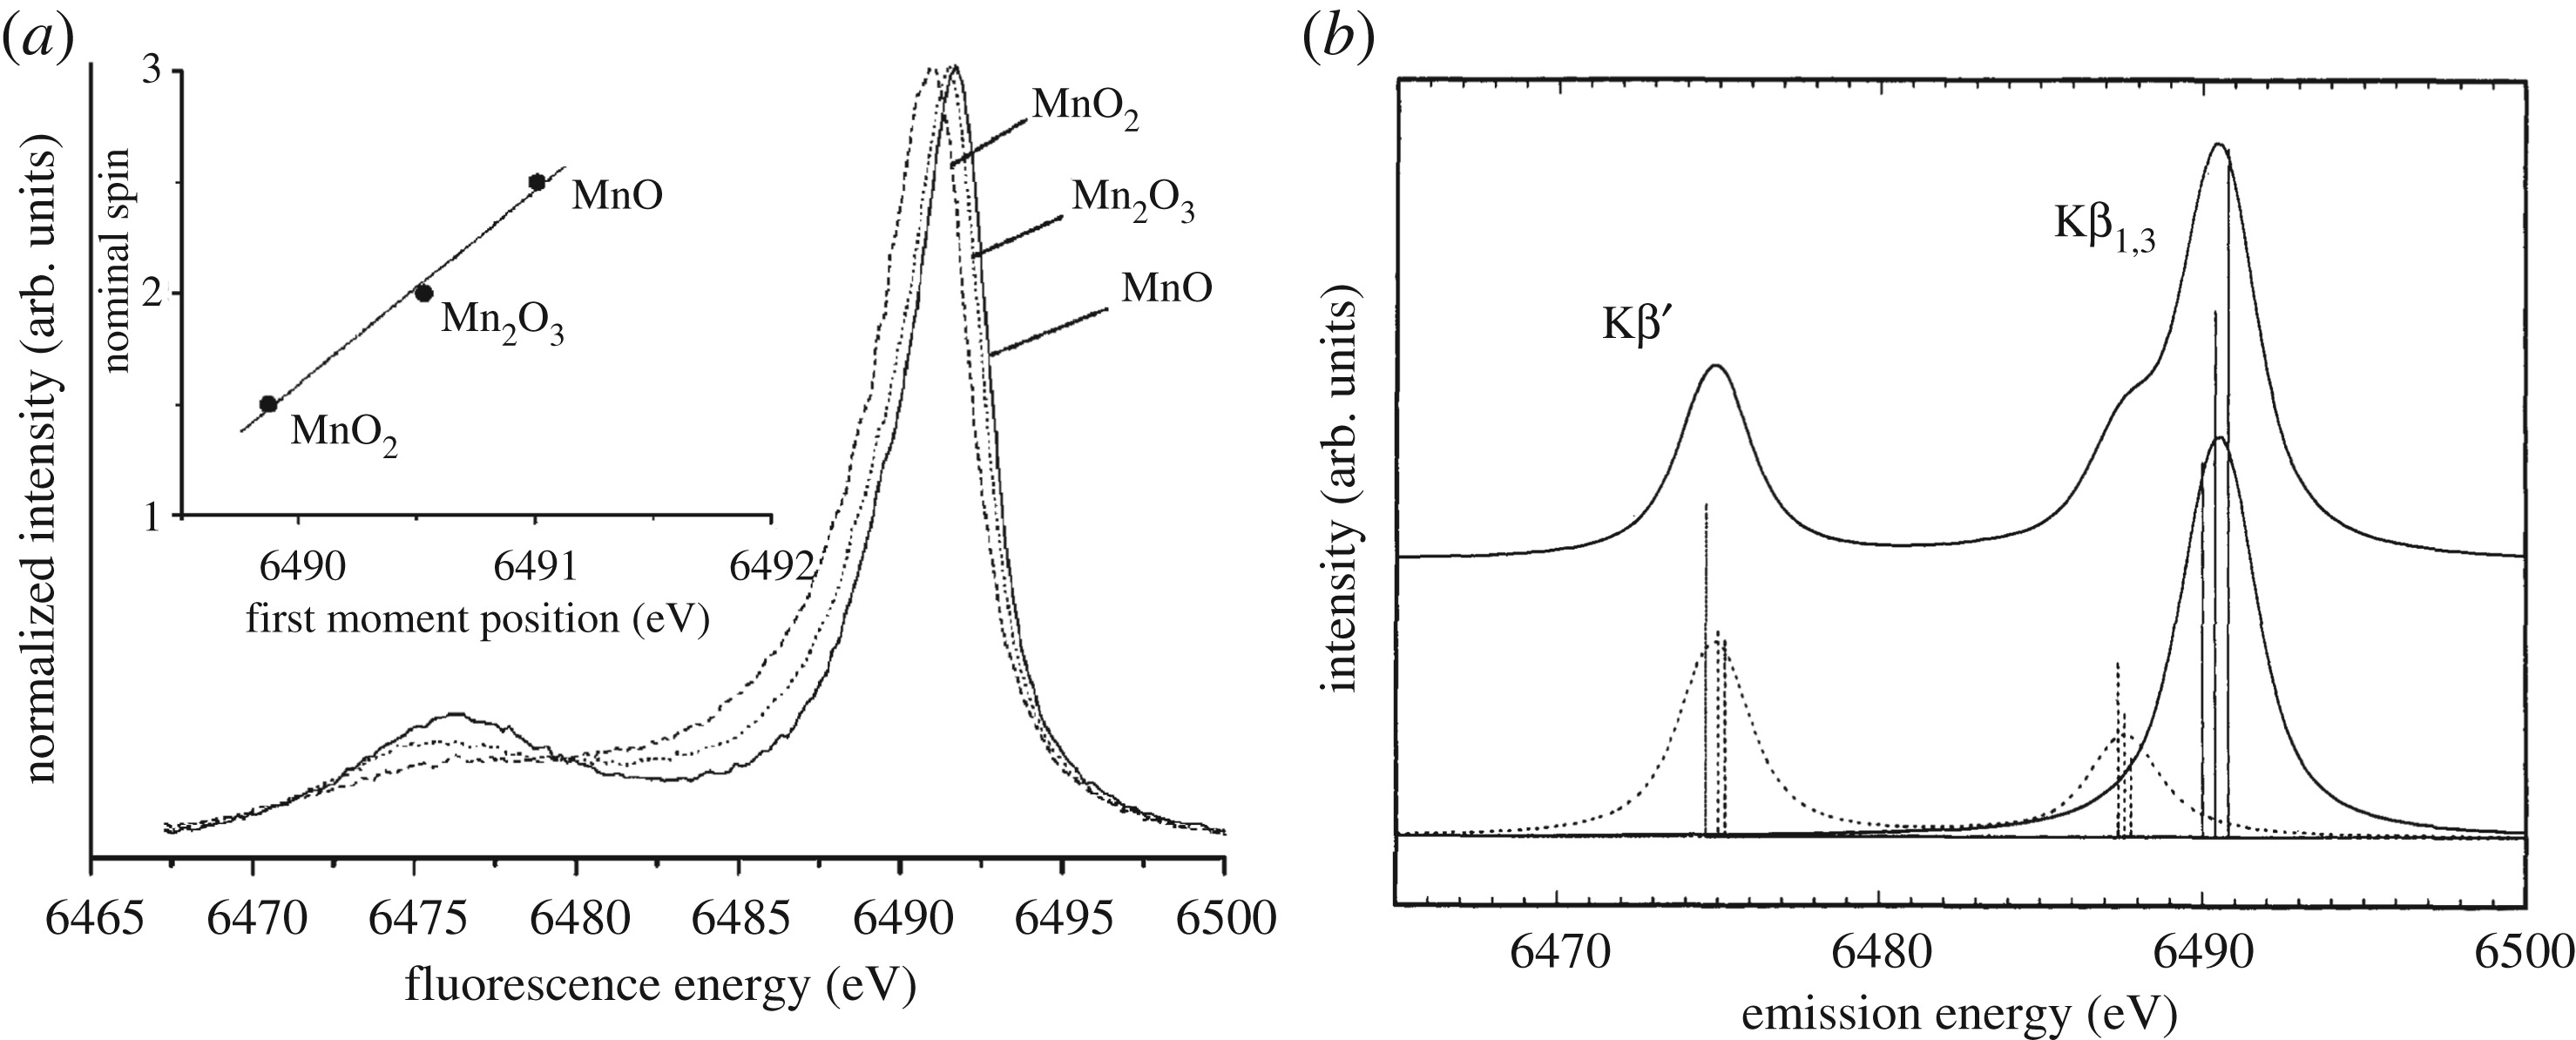 Chemical Interactions And Dynamics With Femtosecond X Ray Spectroscopy And The Role Of X Ray